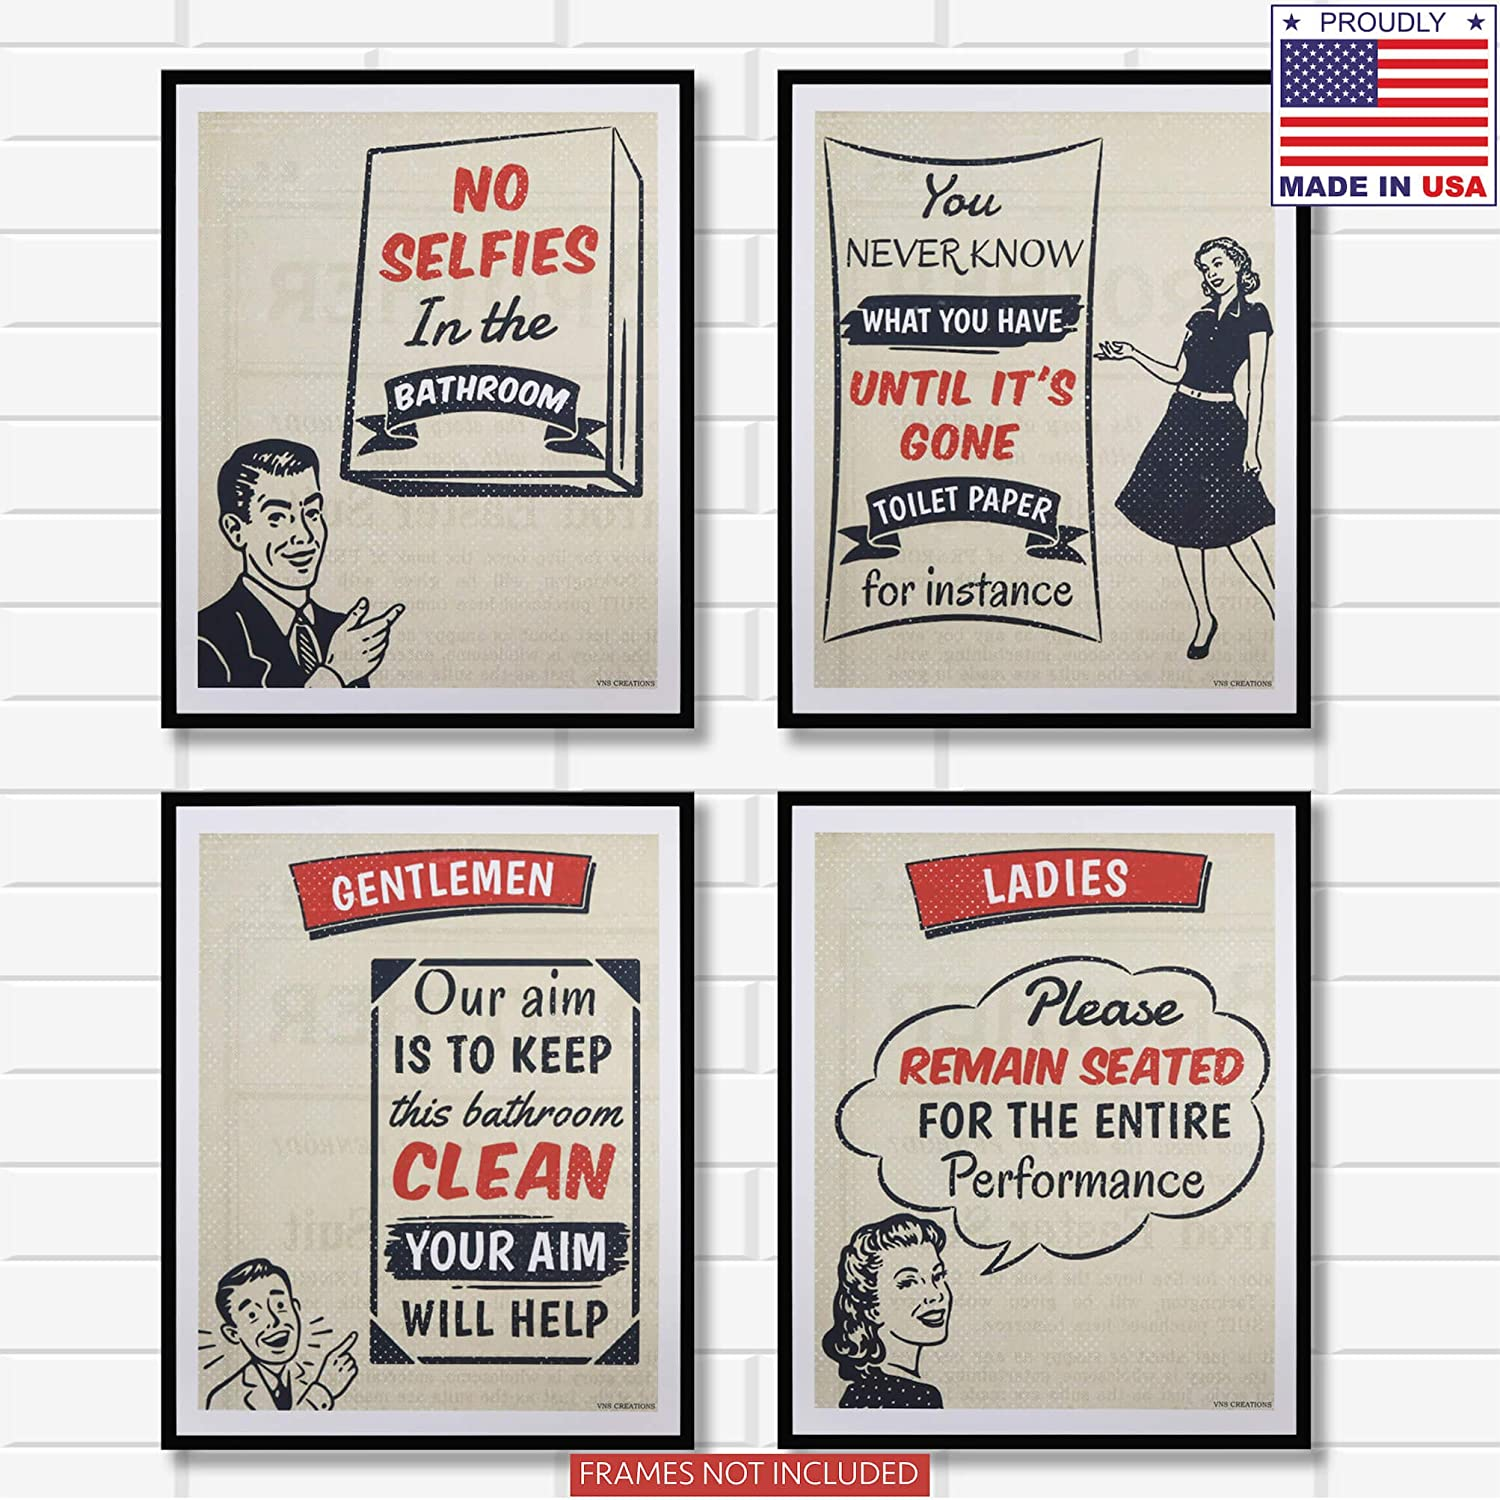 Funny Bathroom Decor Pictures. Set of 4 Unframed Art Prints Signs with Sayings. Vintage & Rustic Bathroom Quotes Decorations. Restroom Wall Decor Posters Ideal for Any House, Apartment or Farmhouse.